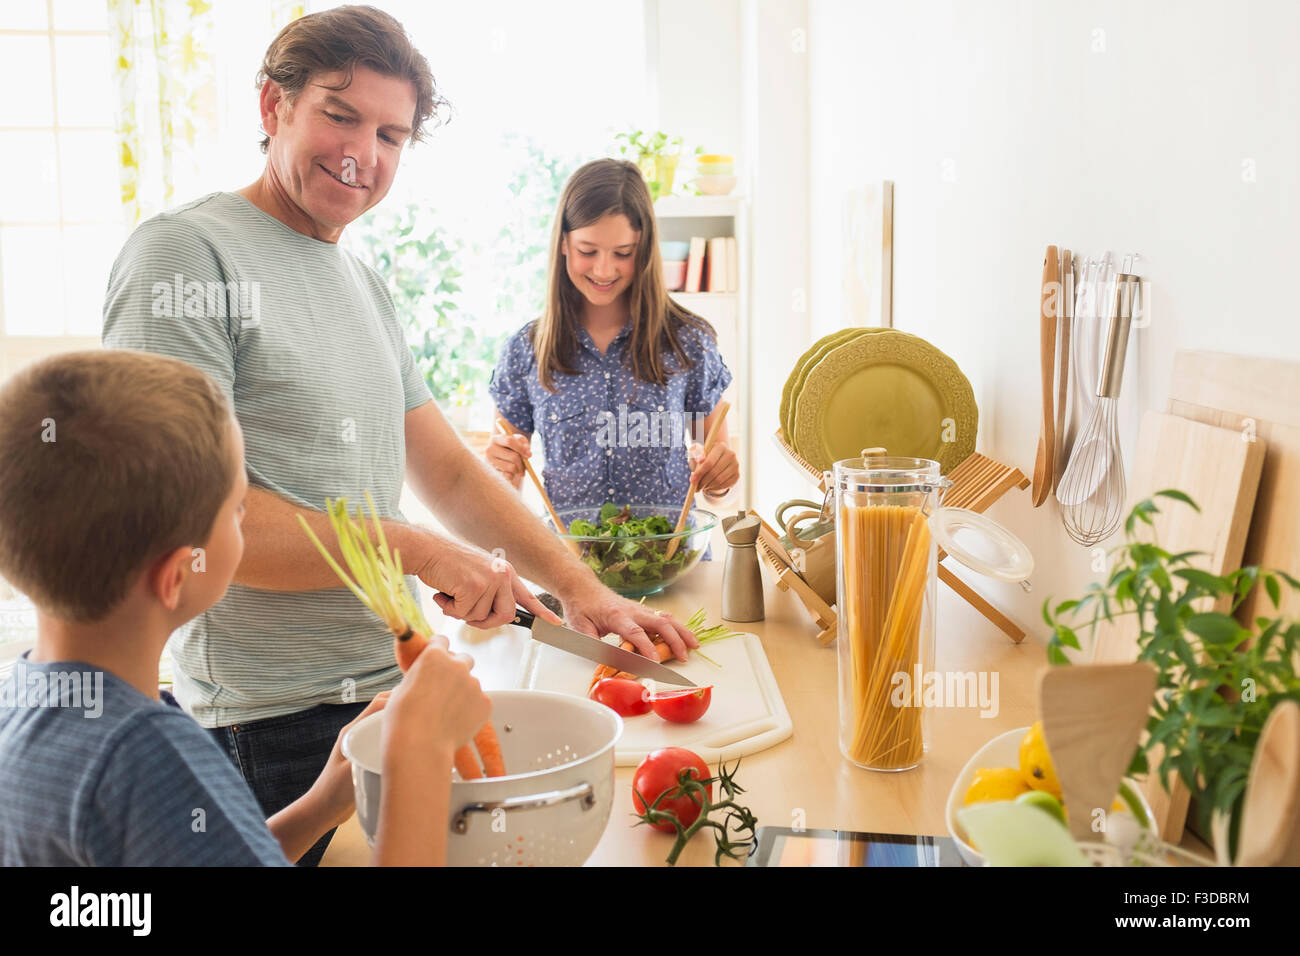 Children (8-9, 10-11) preparing food with their father - Stock Image